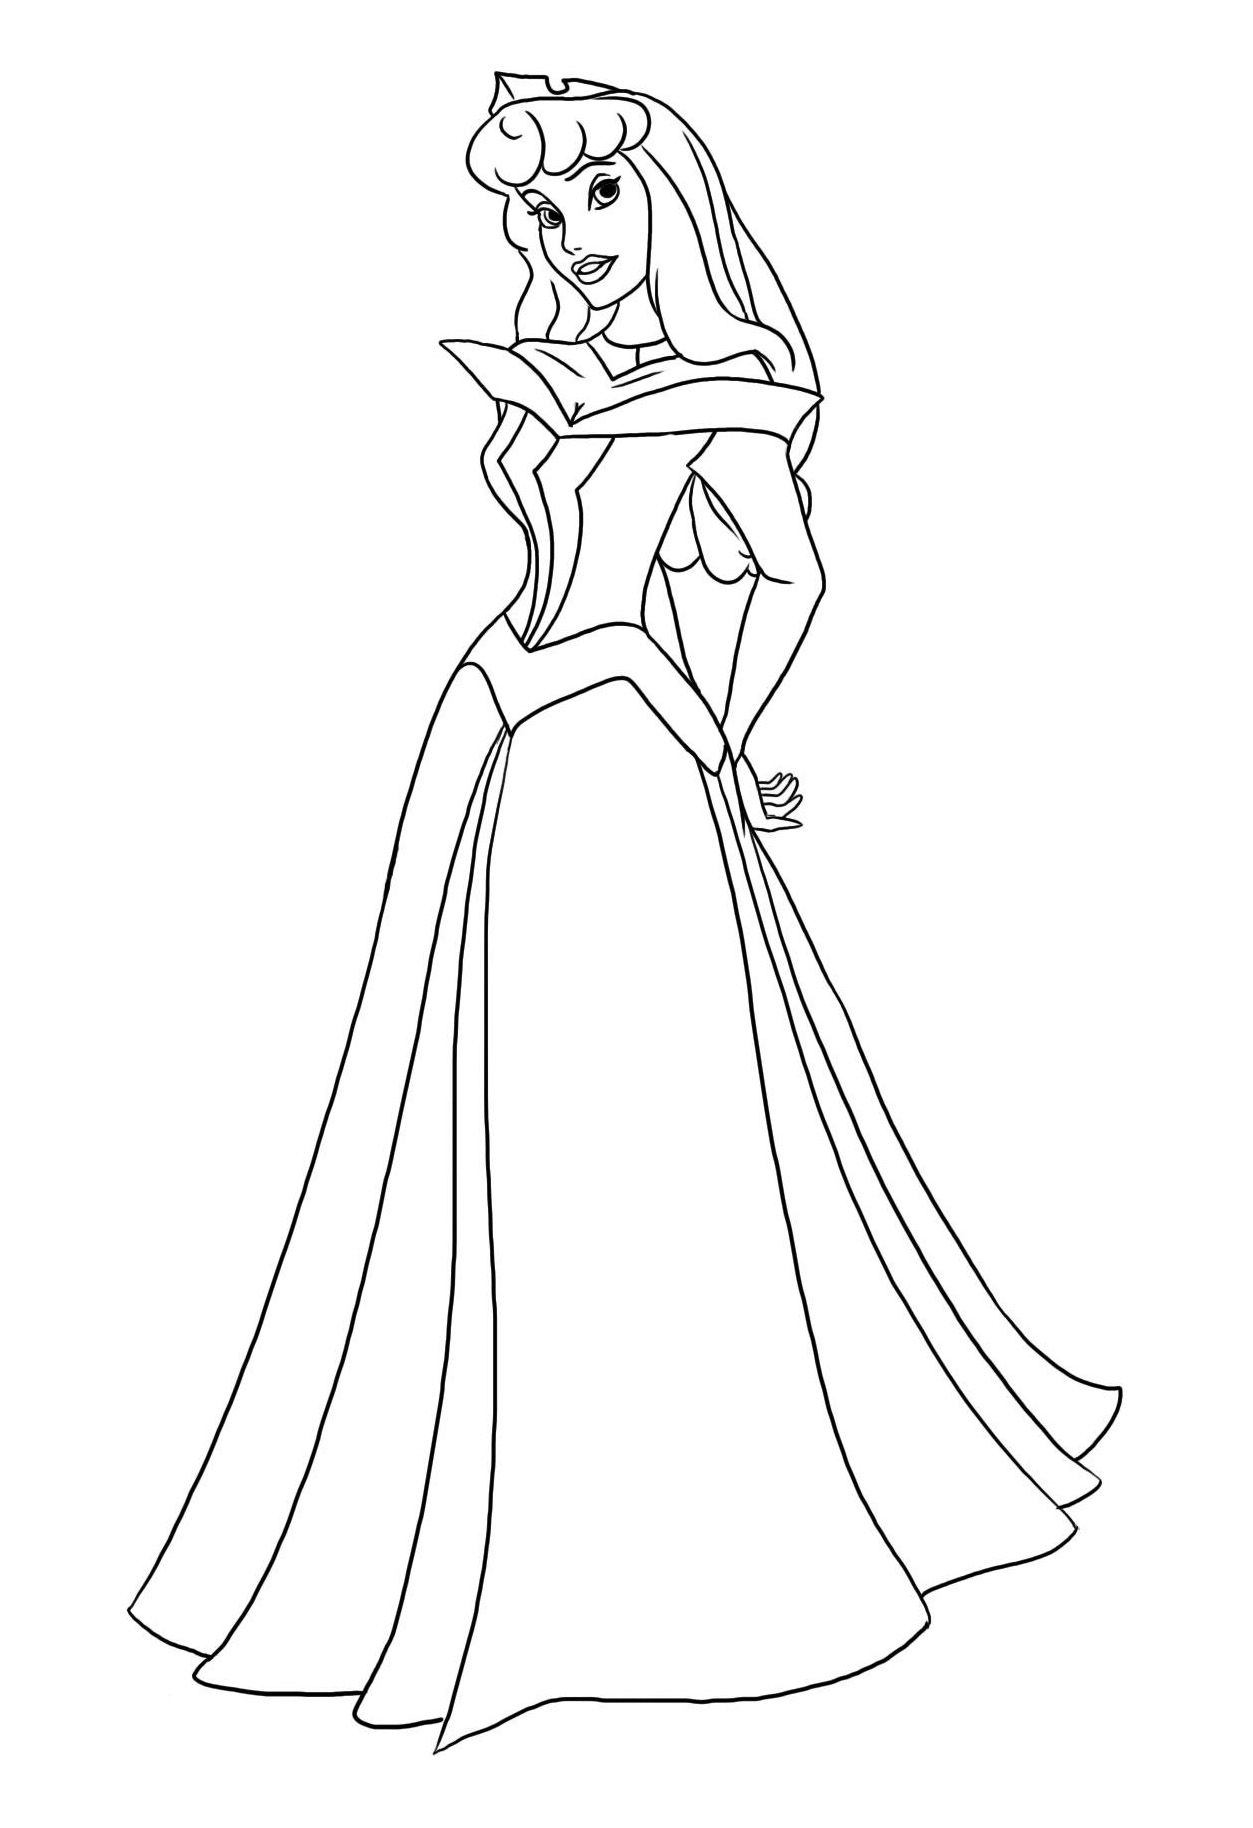 Coloriage princesse colorier dessin imprimer animaux princess coloring pages disney - Coloriage princesses disney a imprimer ...